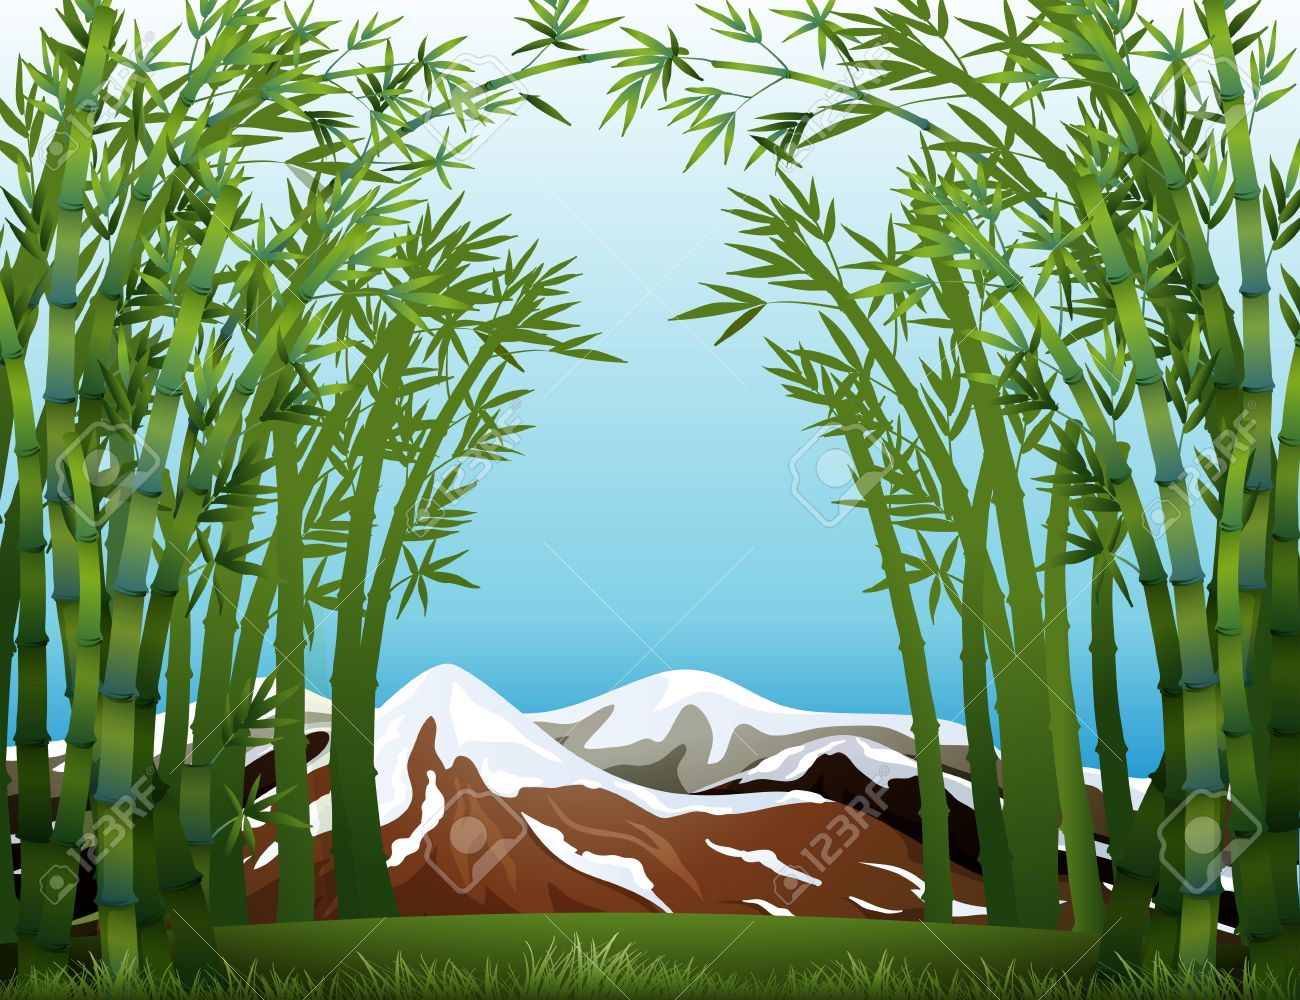 Clipart bamboo forest.